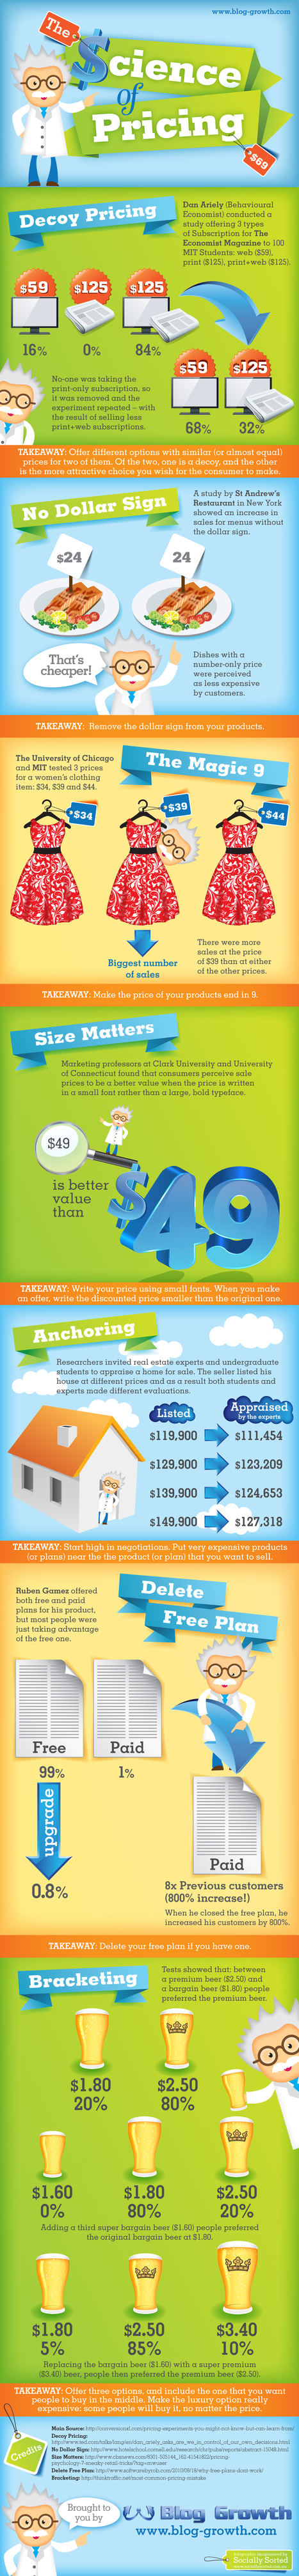 The Science of Pricing #infographic | MarketingHits | Scoop.it